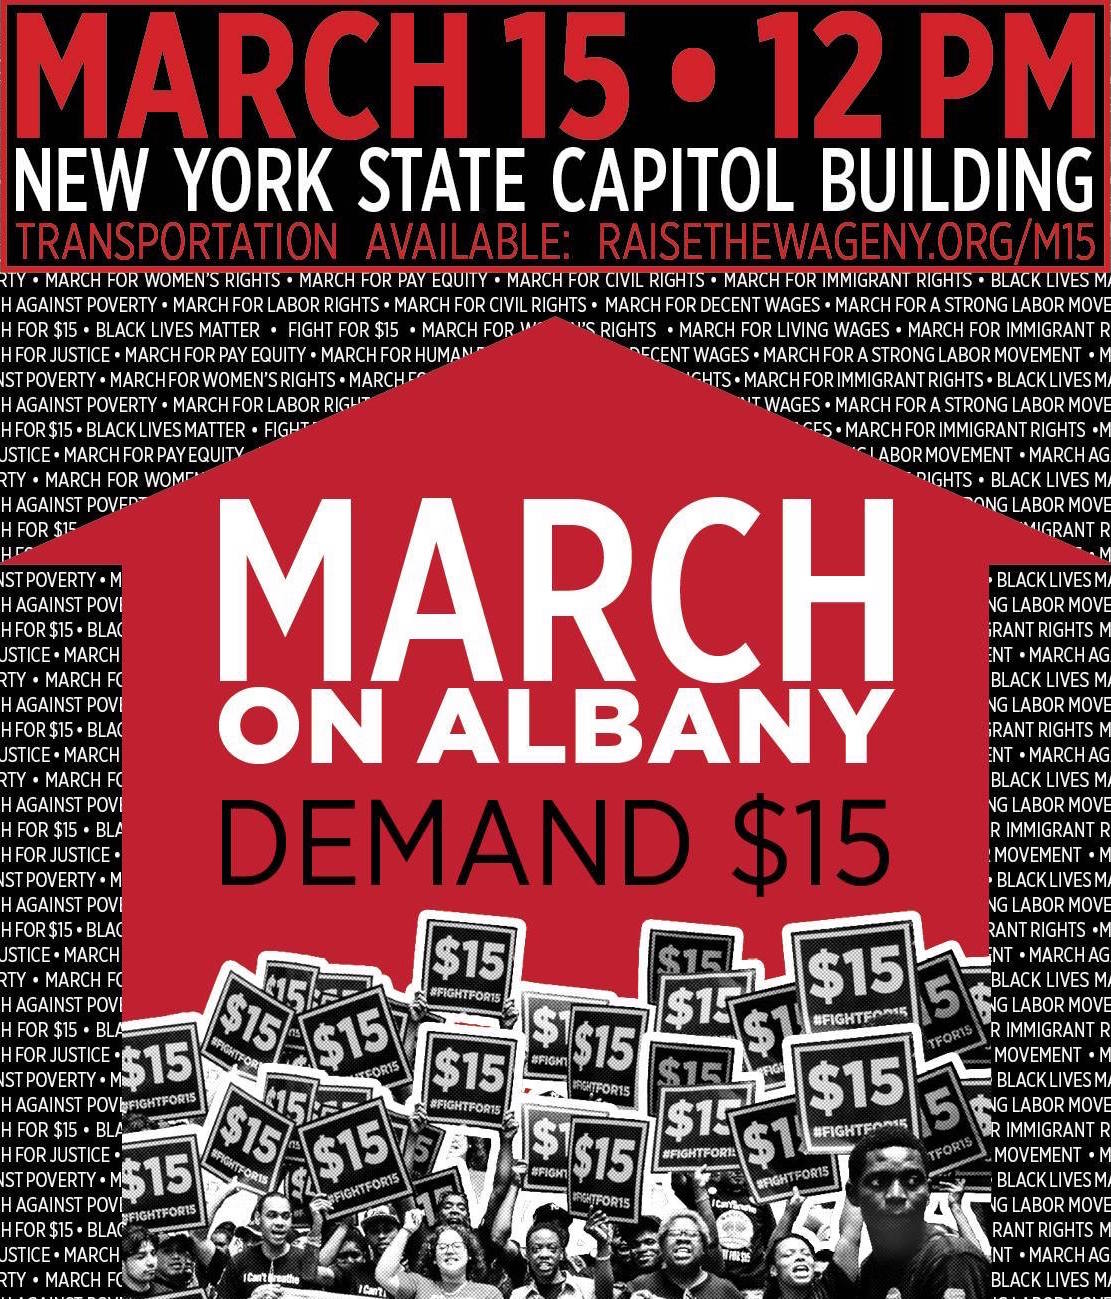 March15Albany